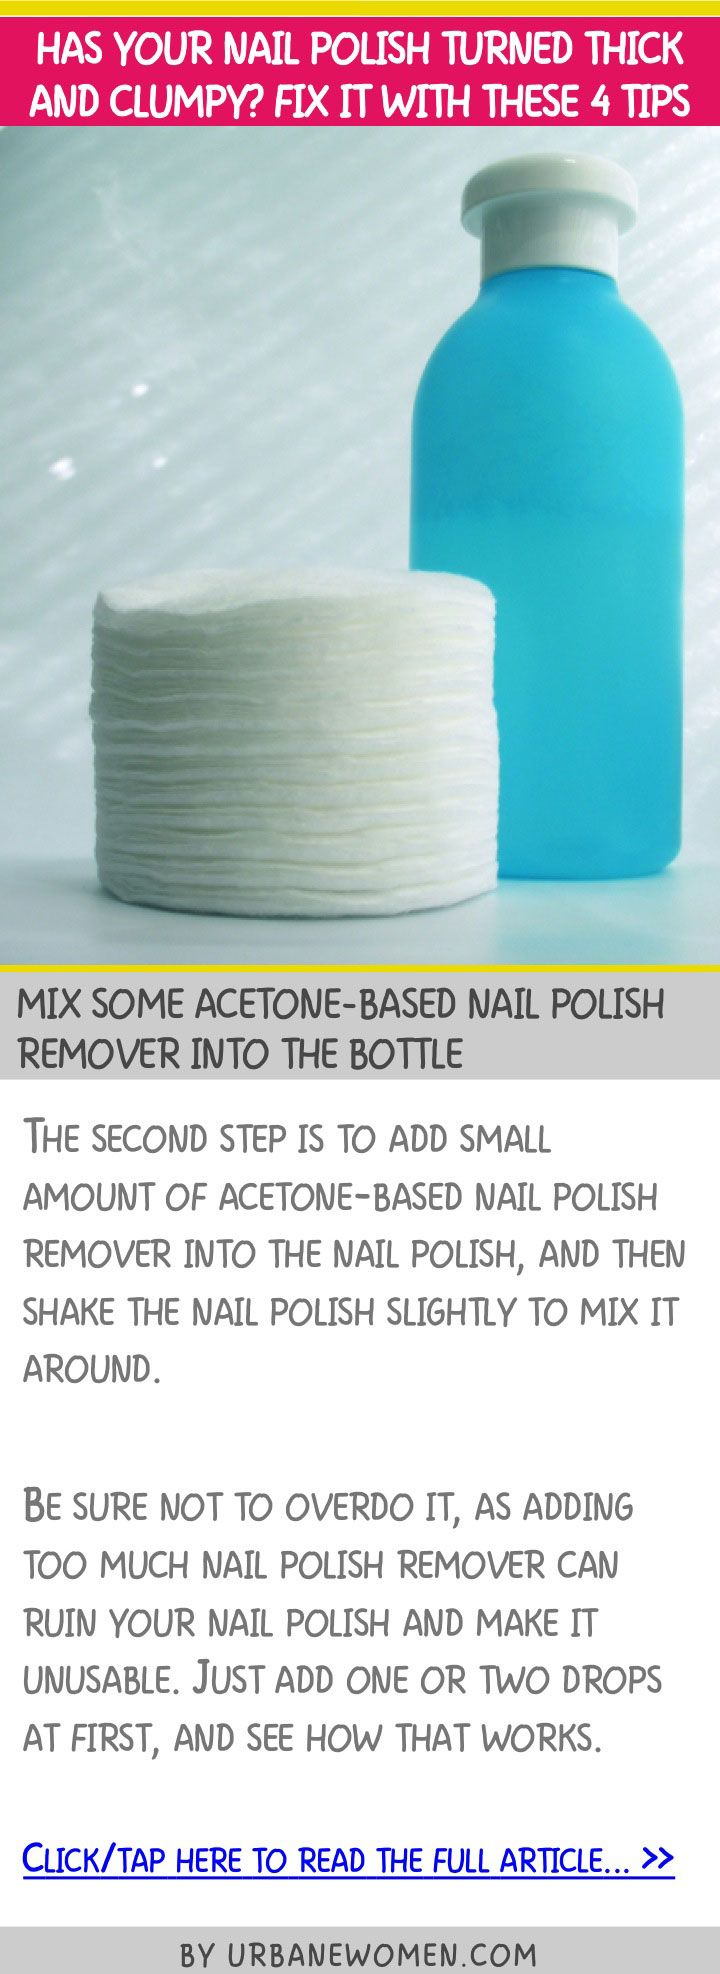 Has your nail polish turned thick and clumpy? Fix it with these 4 tips - Mix some acetone-based nail polish remover into the bottle